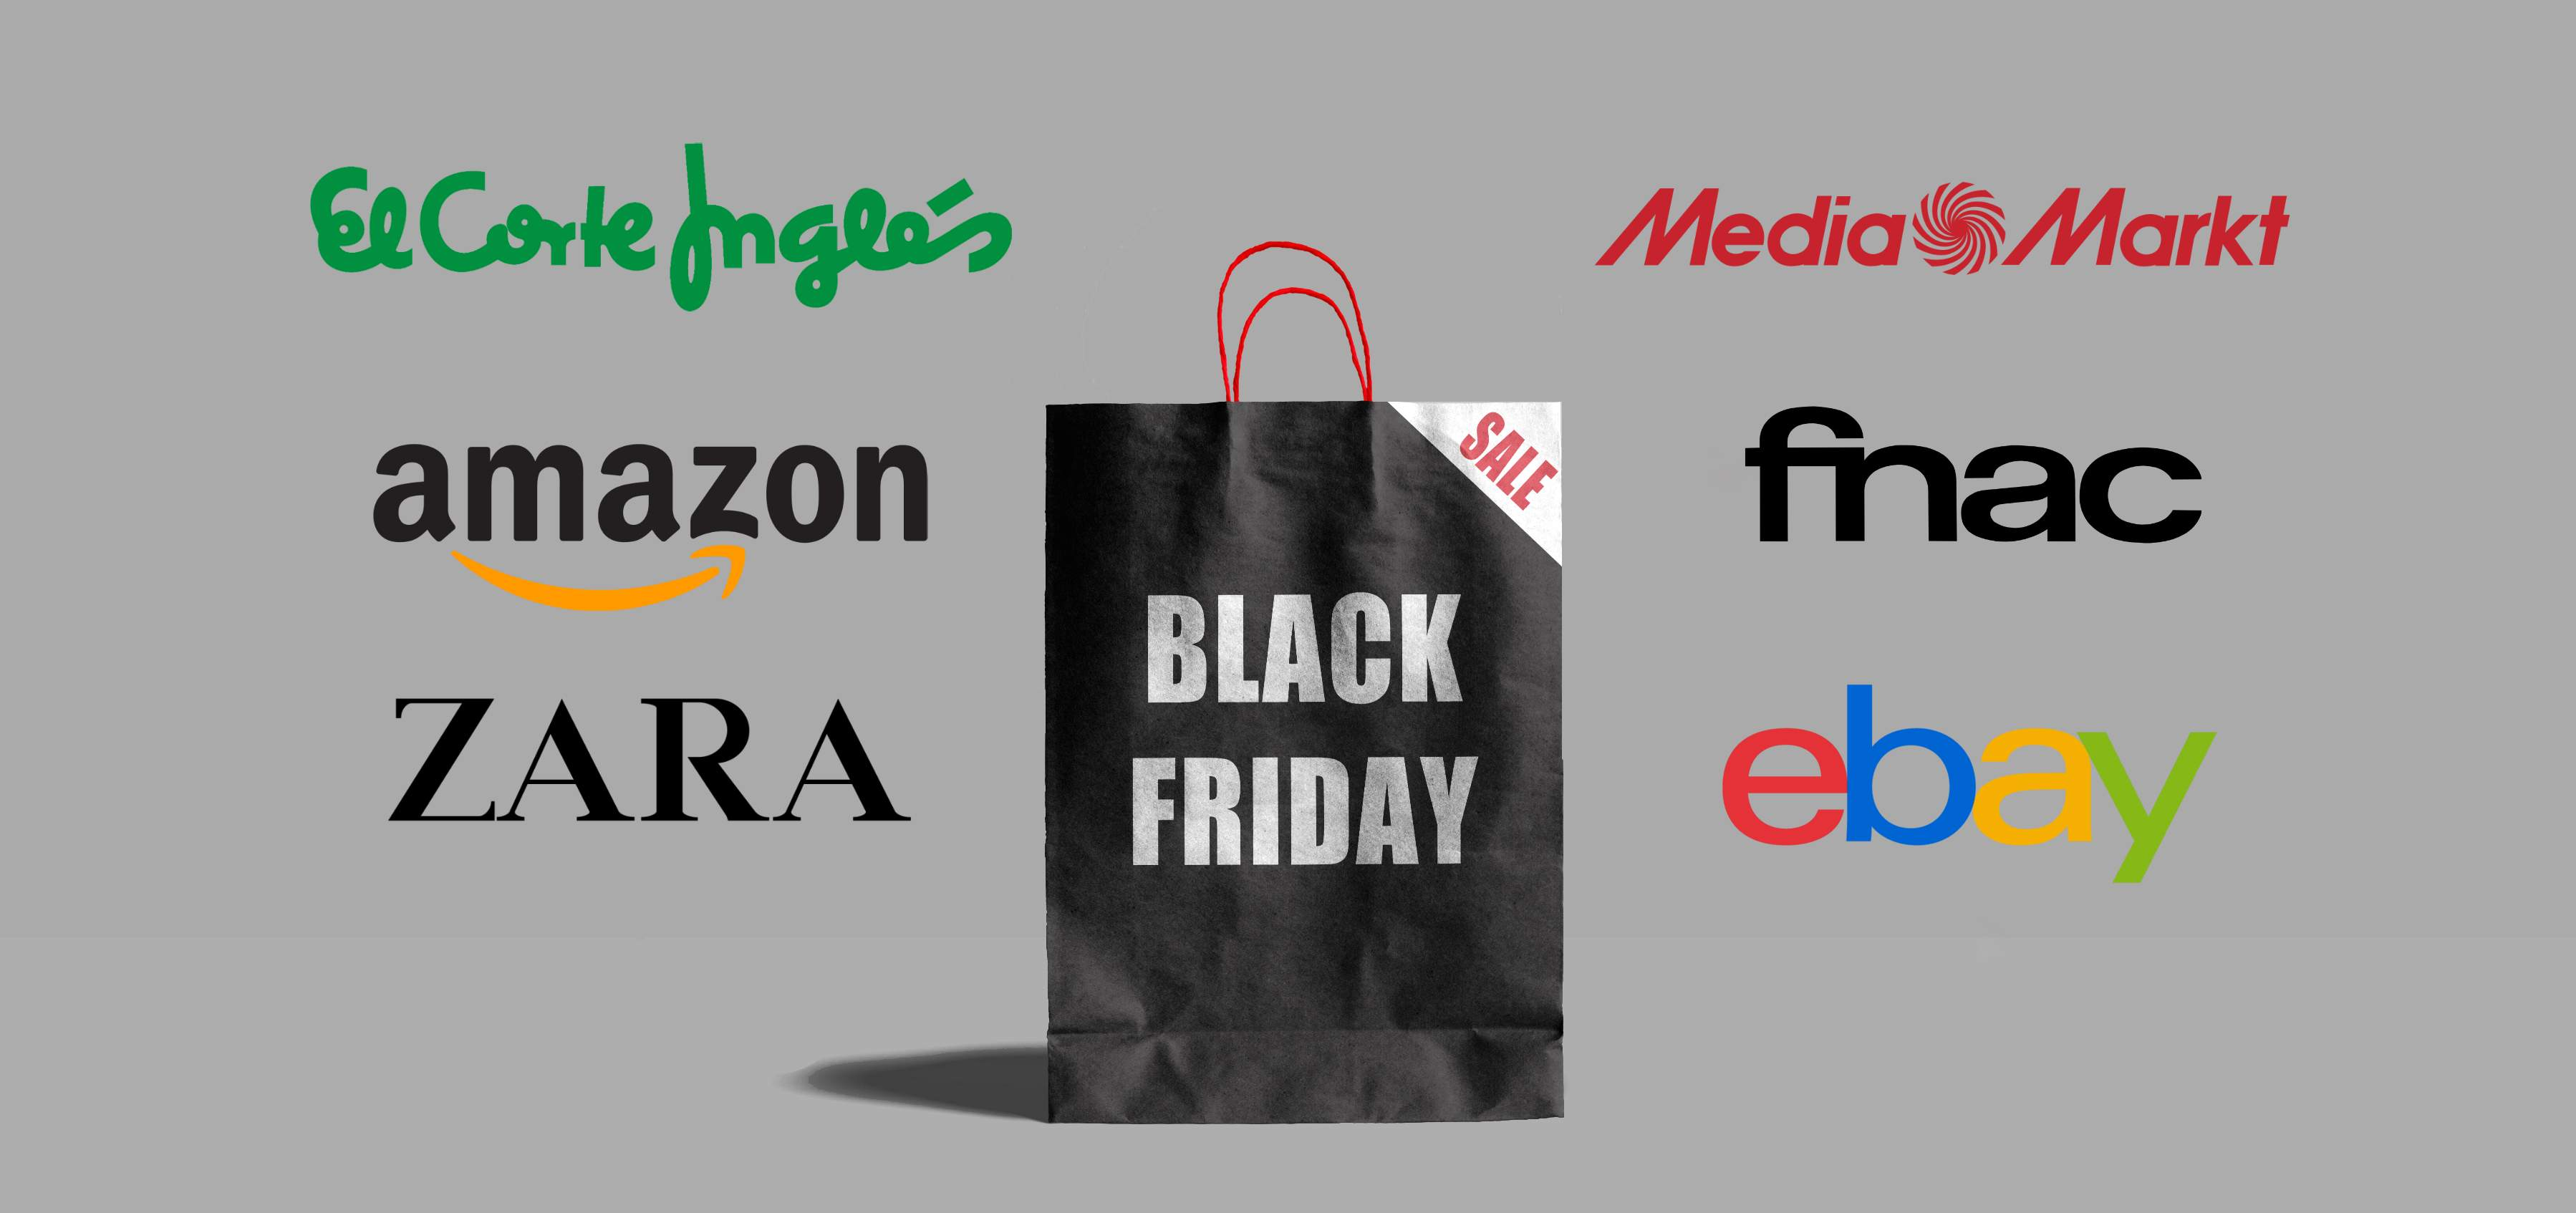 962323716e Black Friday 2018  ofertas y descuentos de Apple